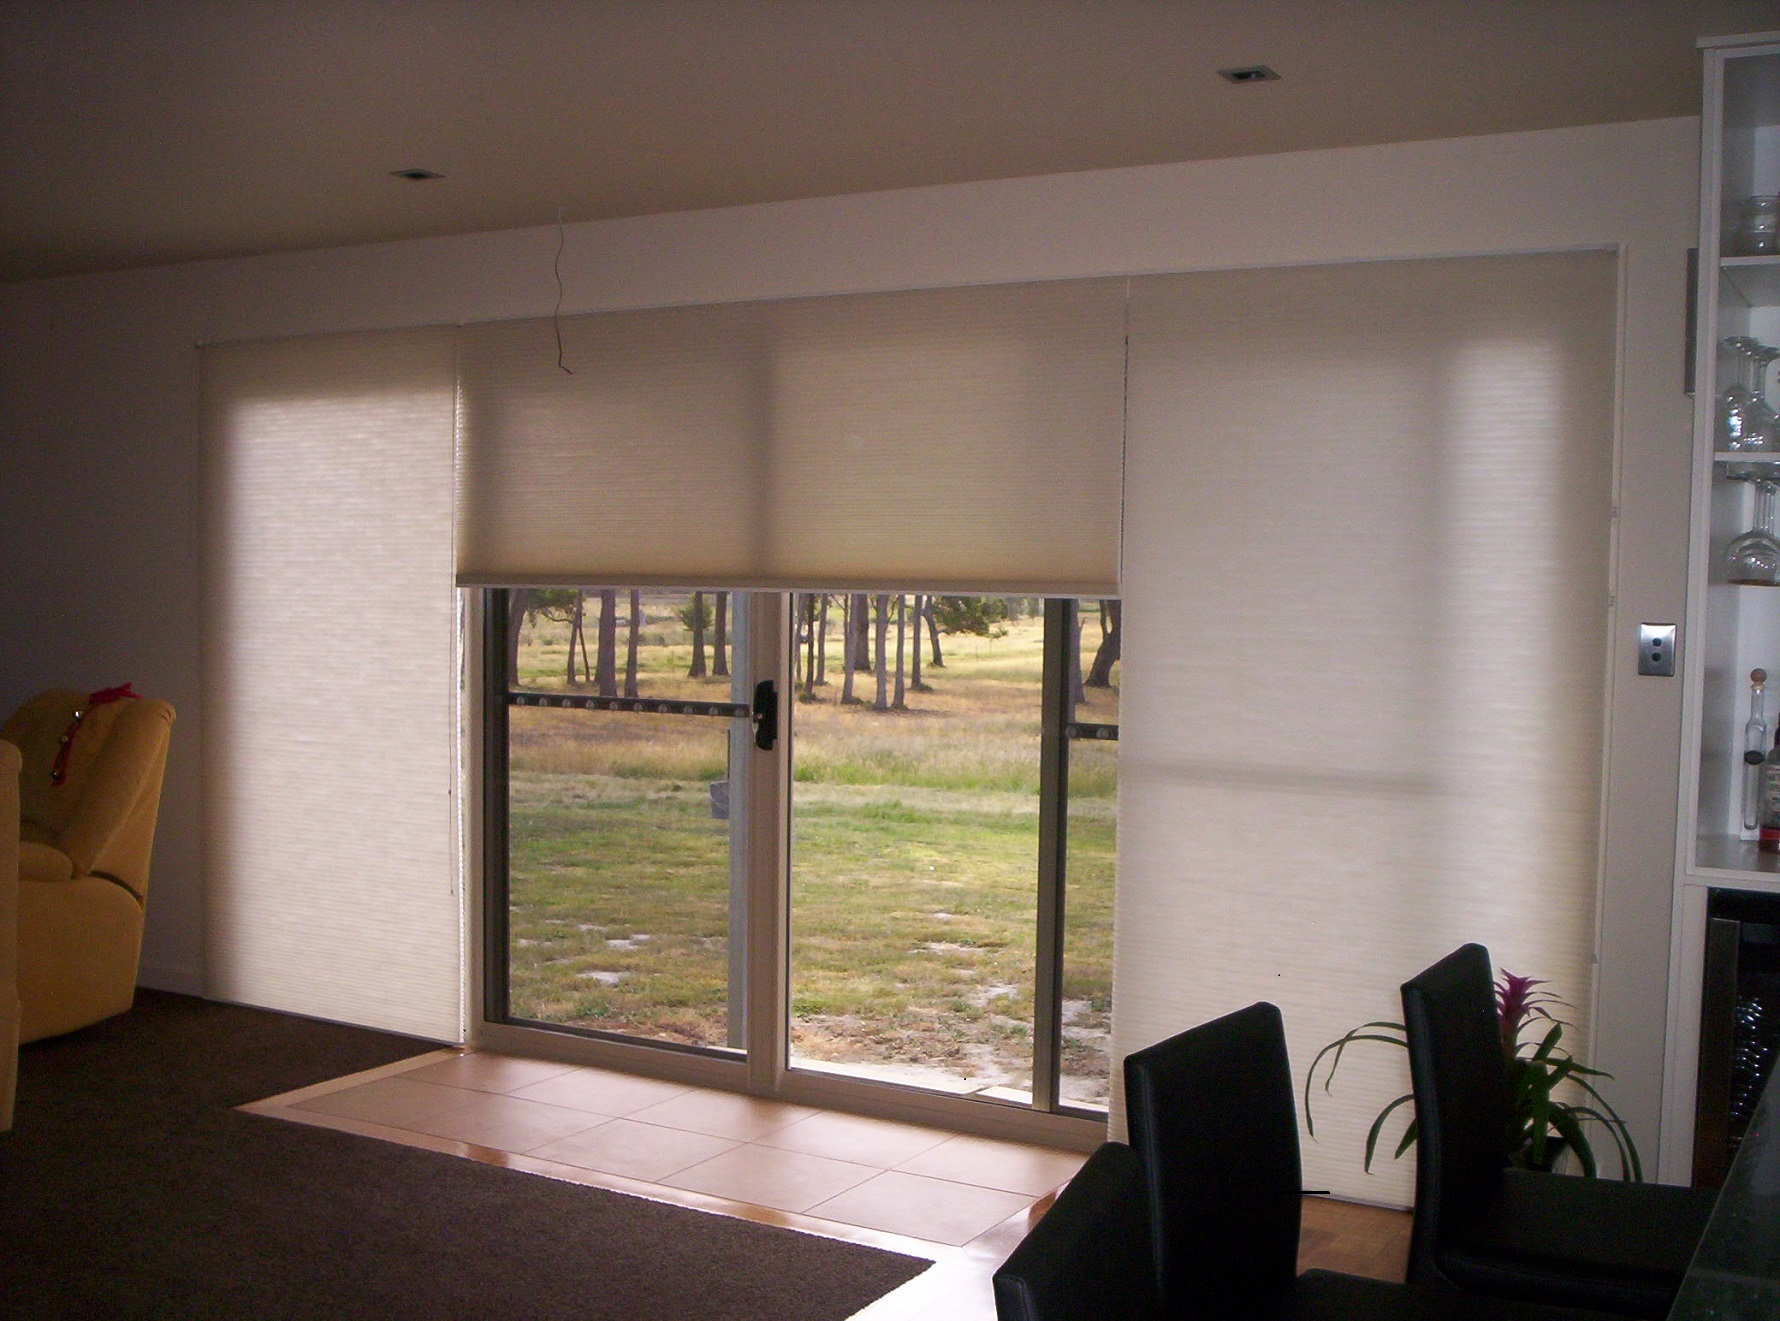 Lowes Shades | Blackout Roller Shades Lowes | Lowes Patio Shades